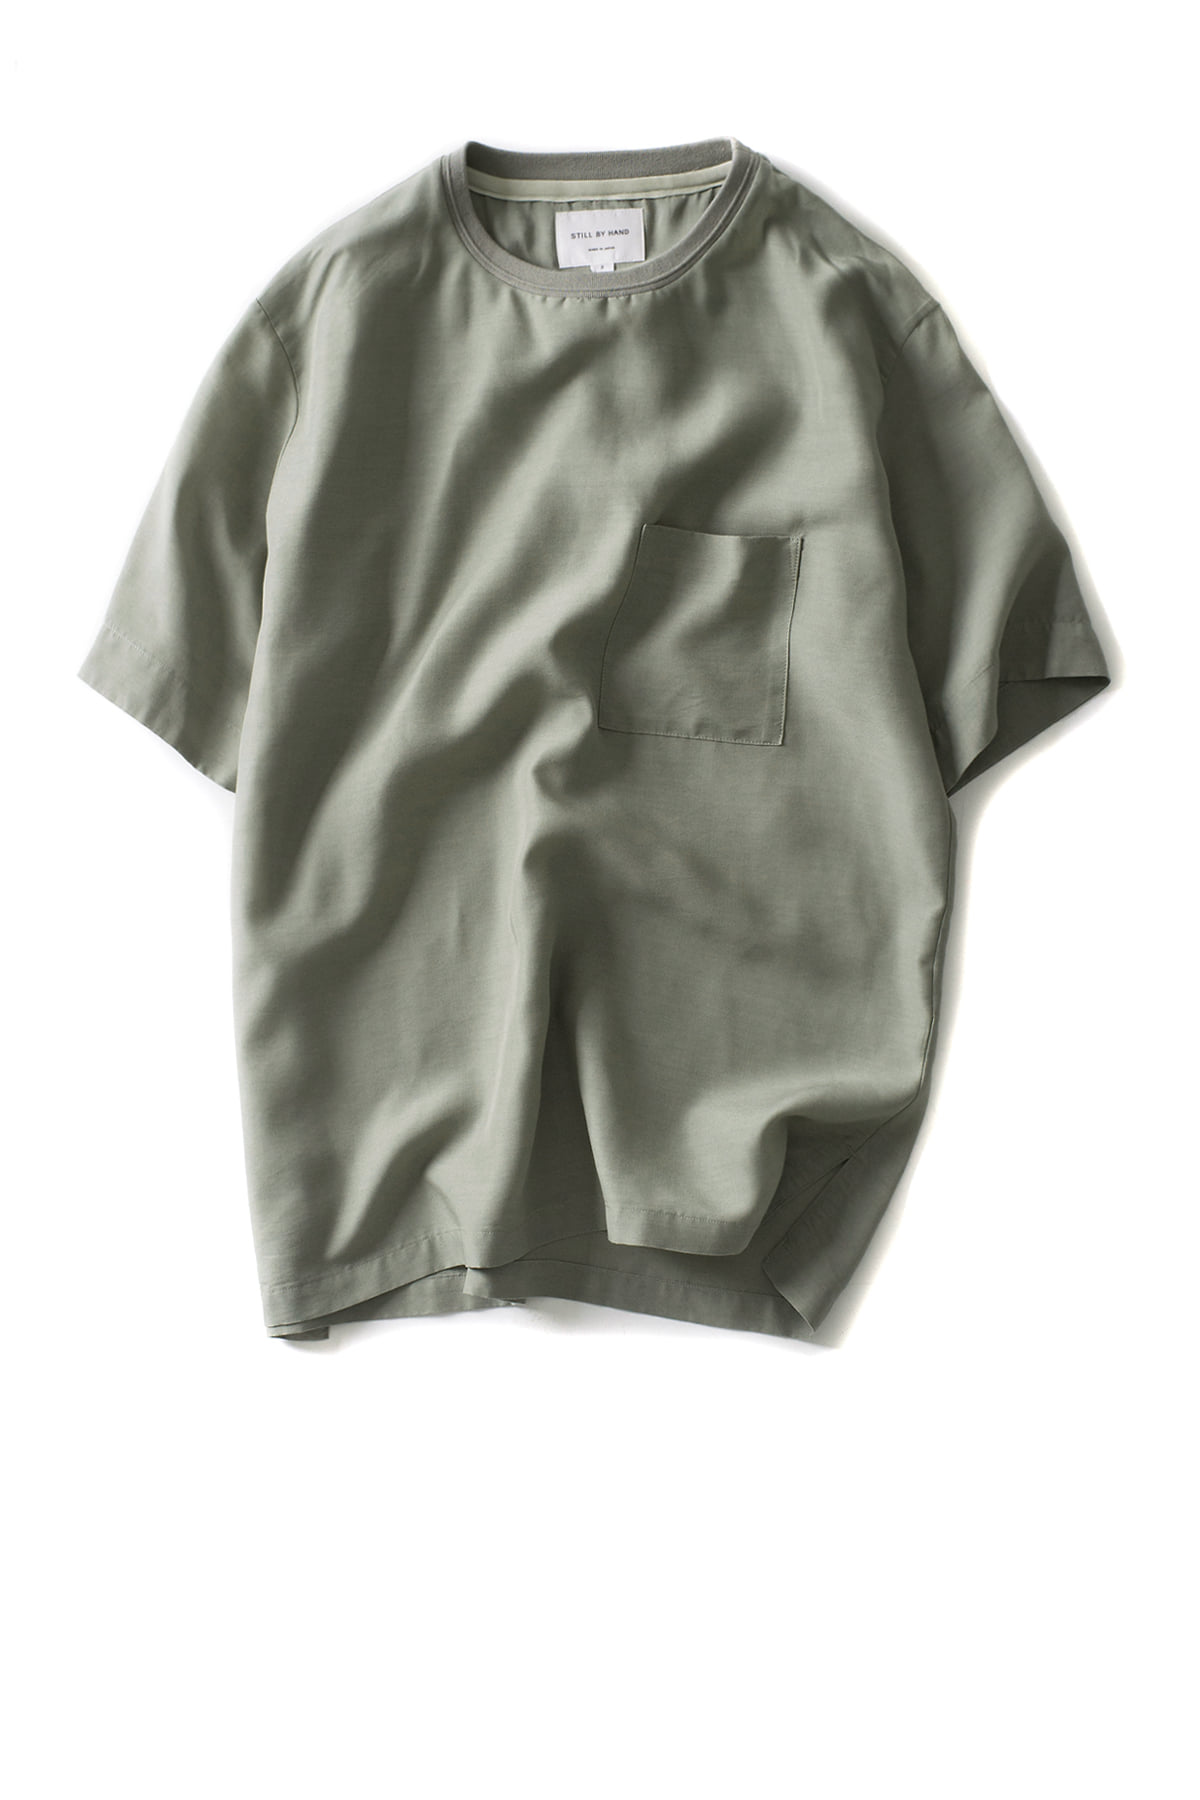 Still by Hand : Over Fit Crew Shirt (Green)